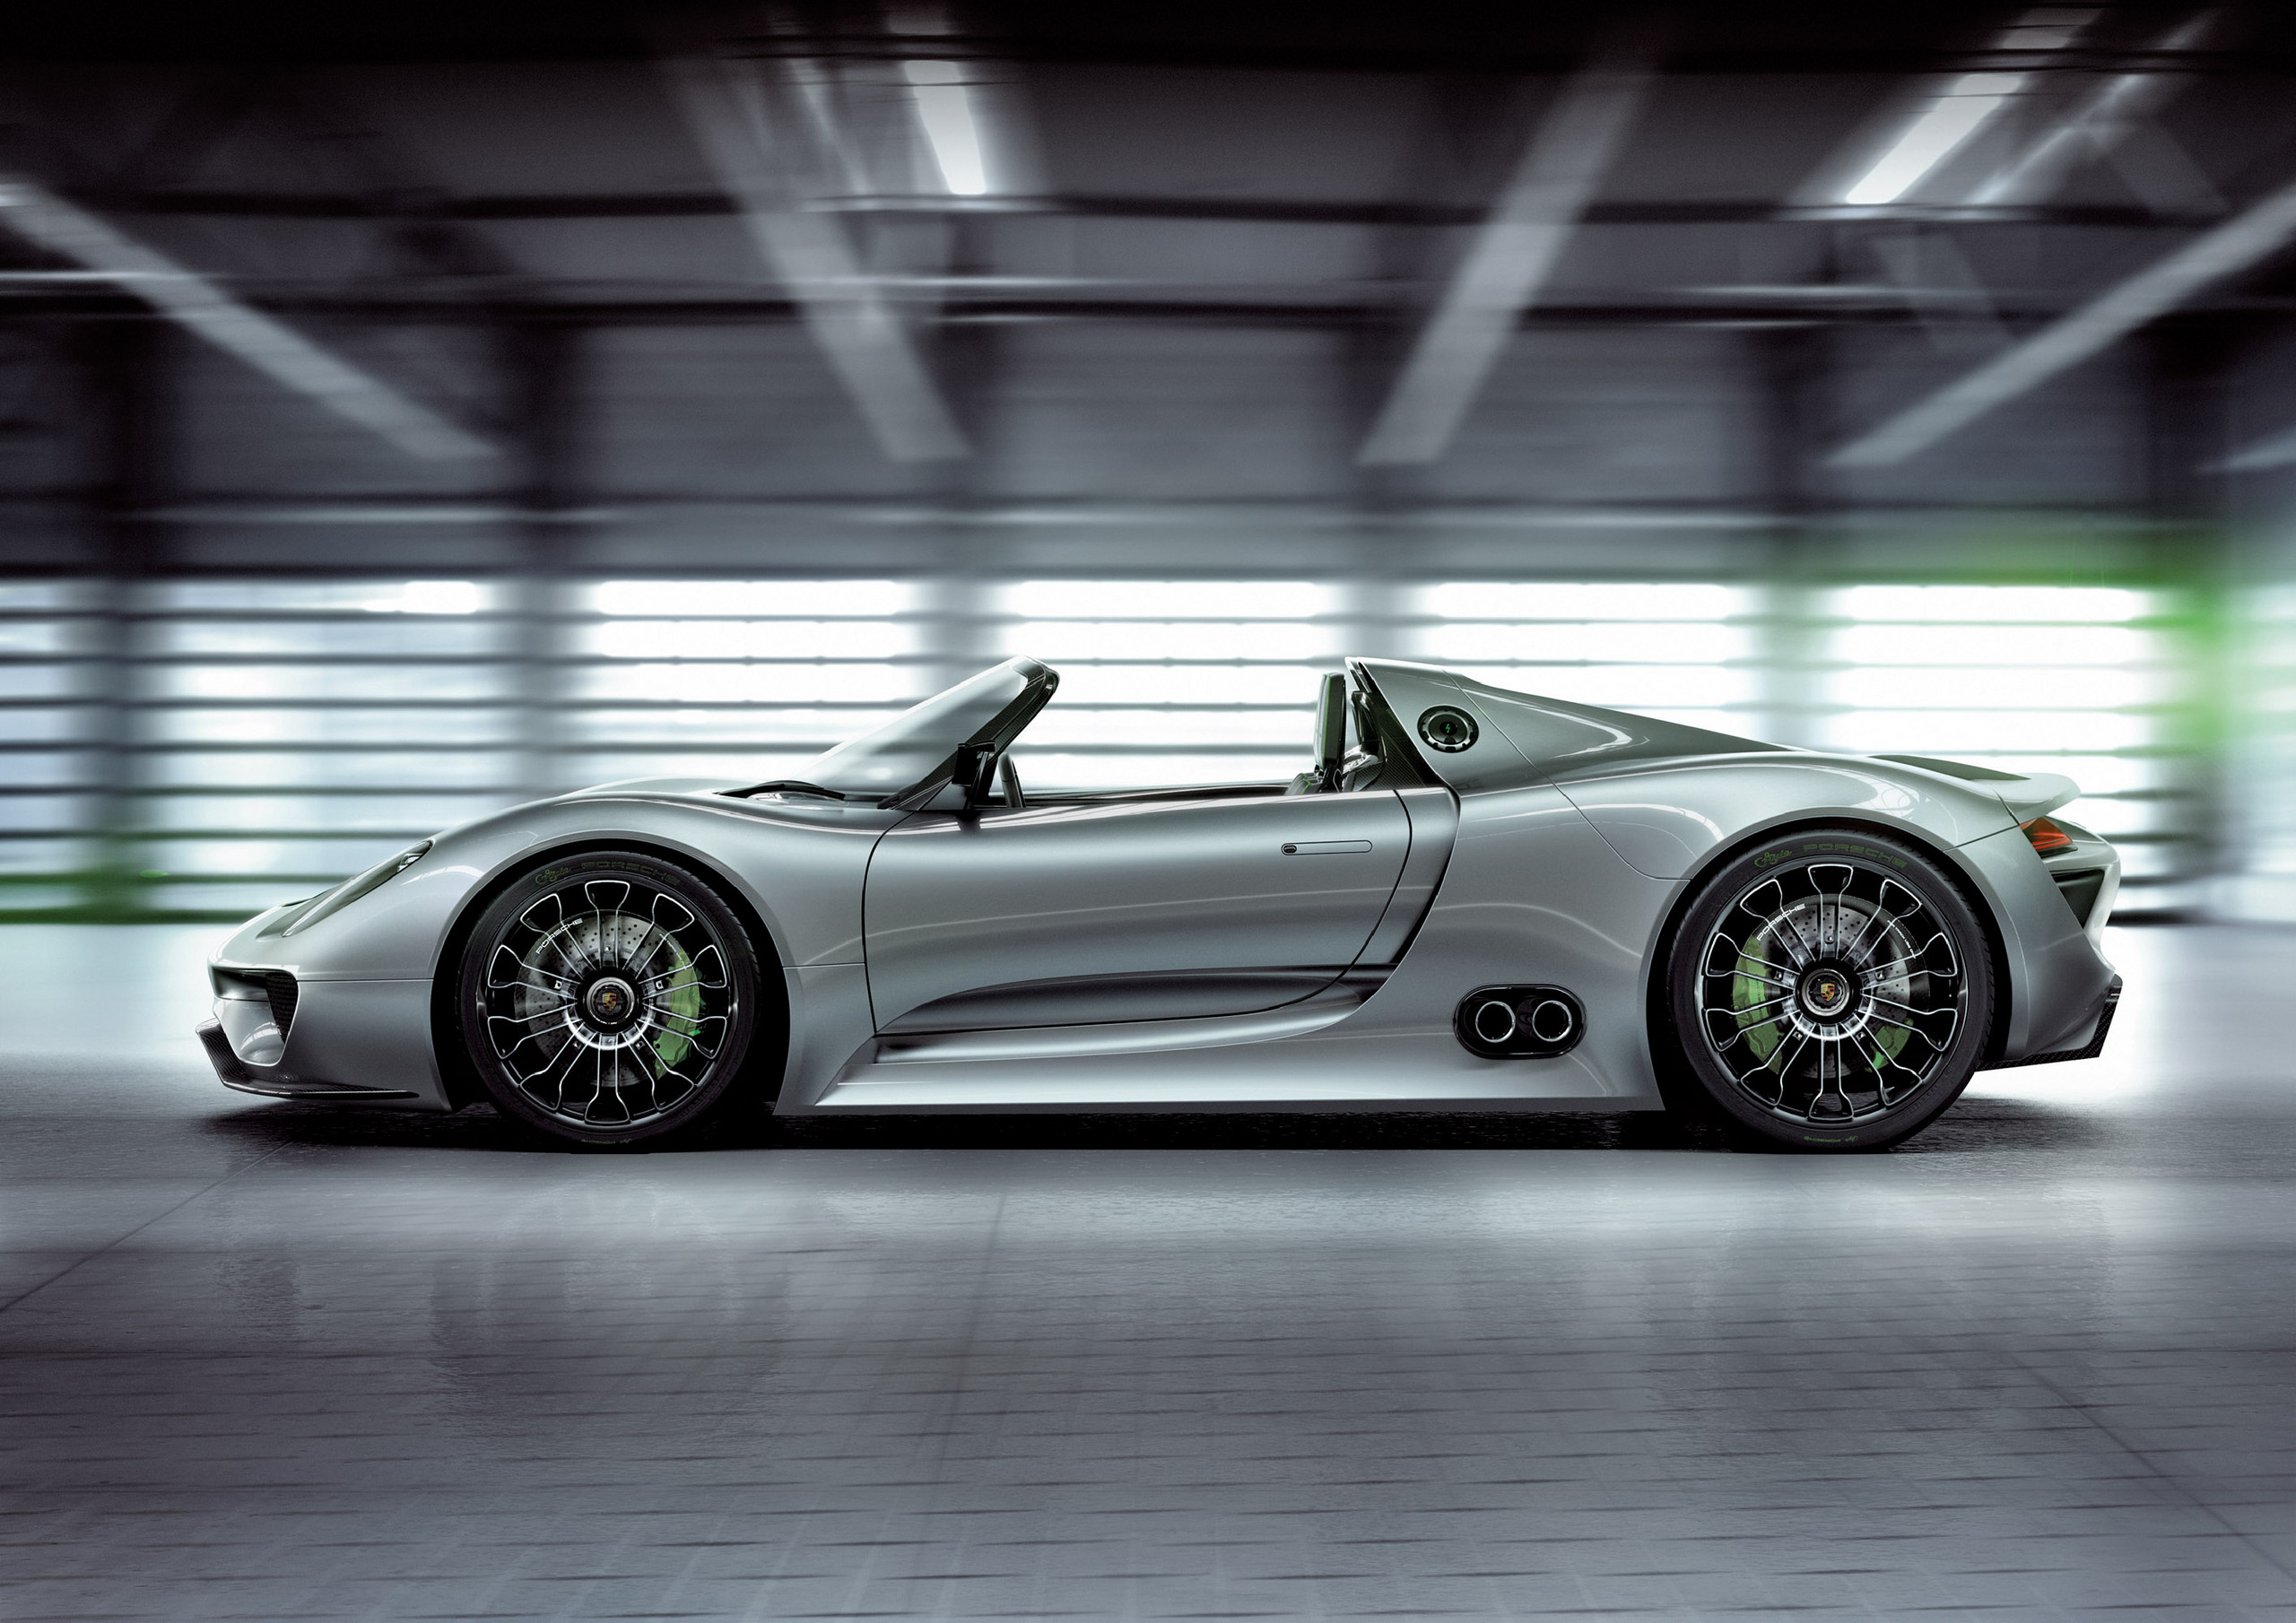 3d Nature Wallpaper Exotic Cars Images Porsche 918 Spyder Hd Wallpaper And Background